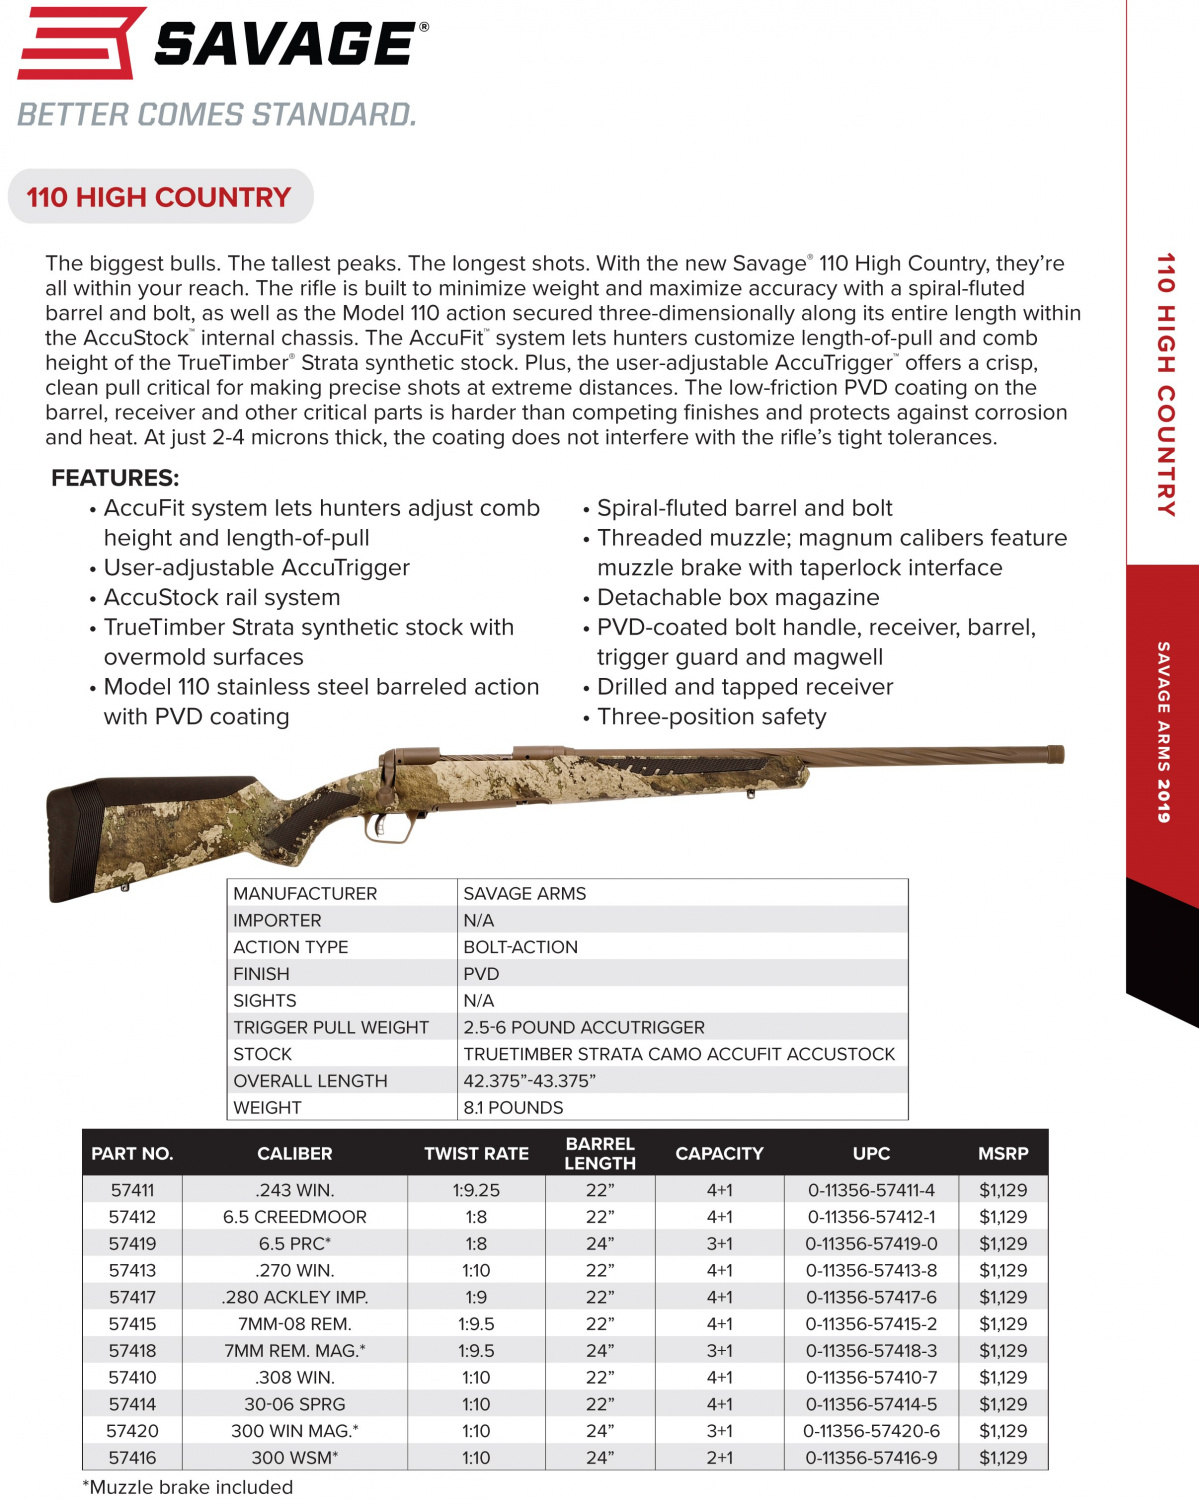 NEW Savage 110 High Country - Big Game, Long Distance